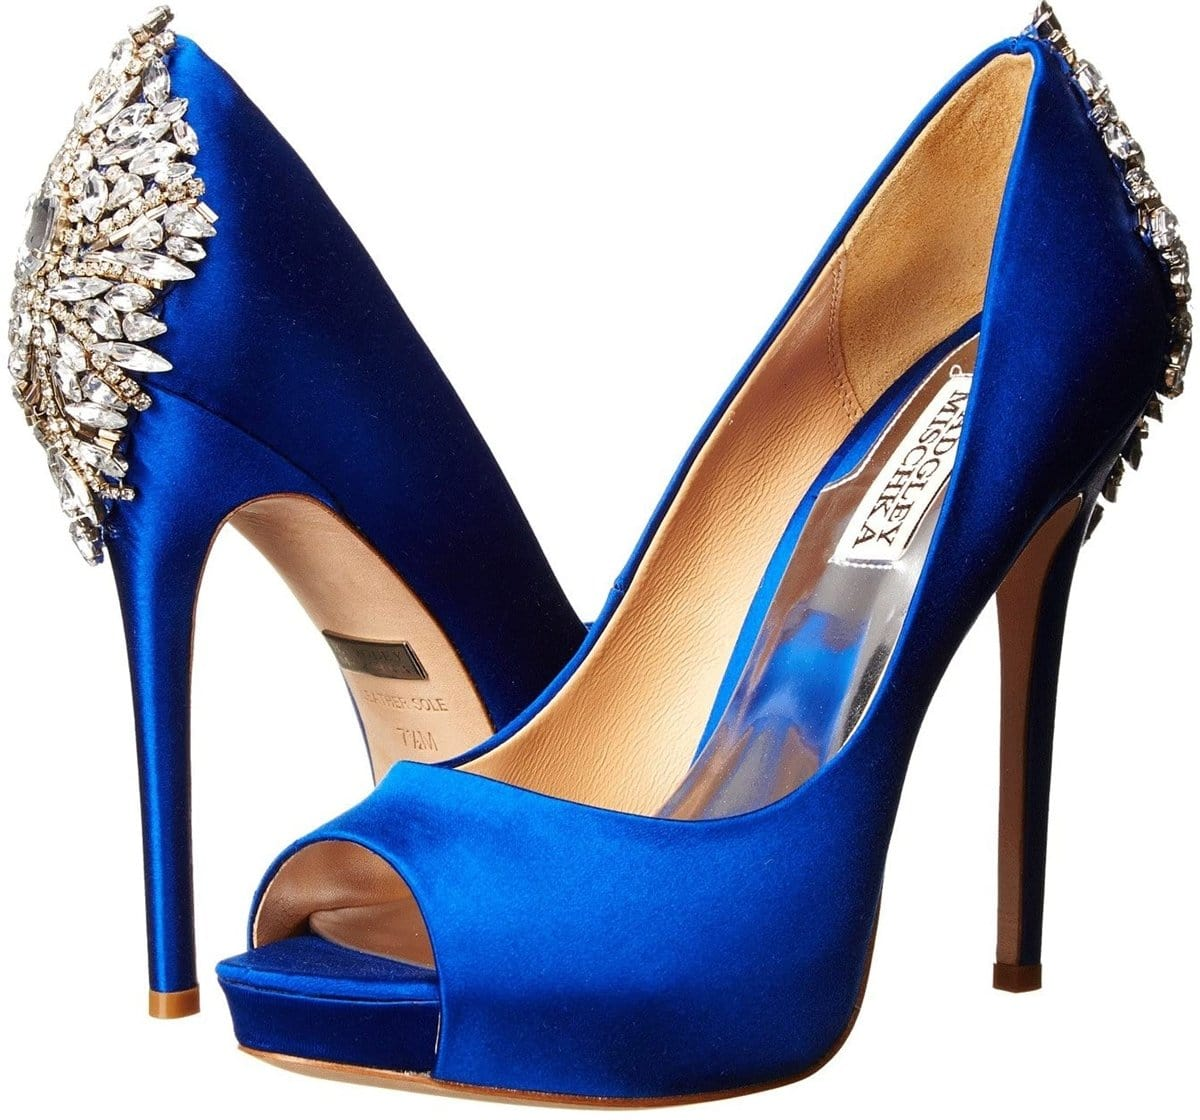 Add the perfect finishing touch to your outfit with the blue sapphire satin Kiara embellished peep-toe pump from Badgley Mischka